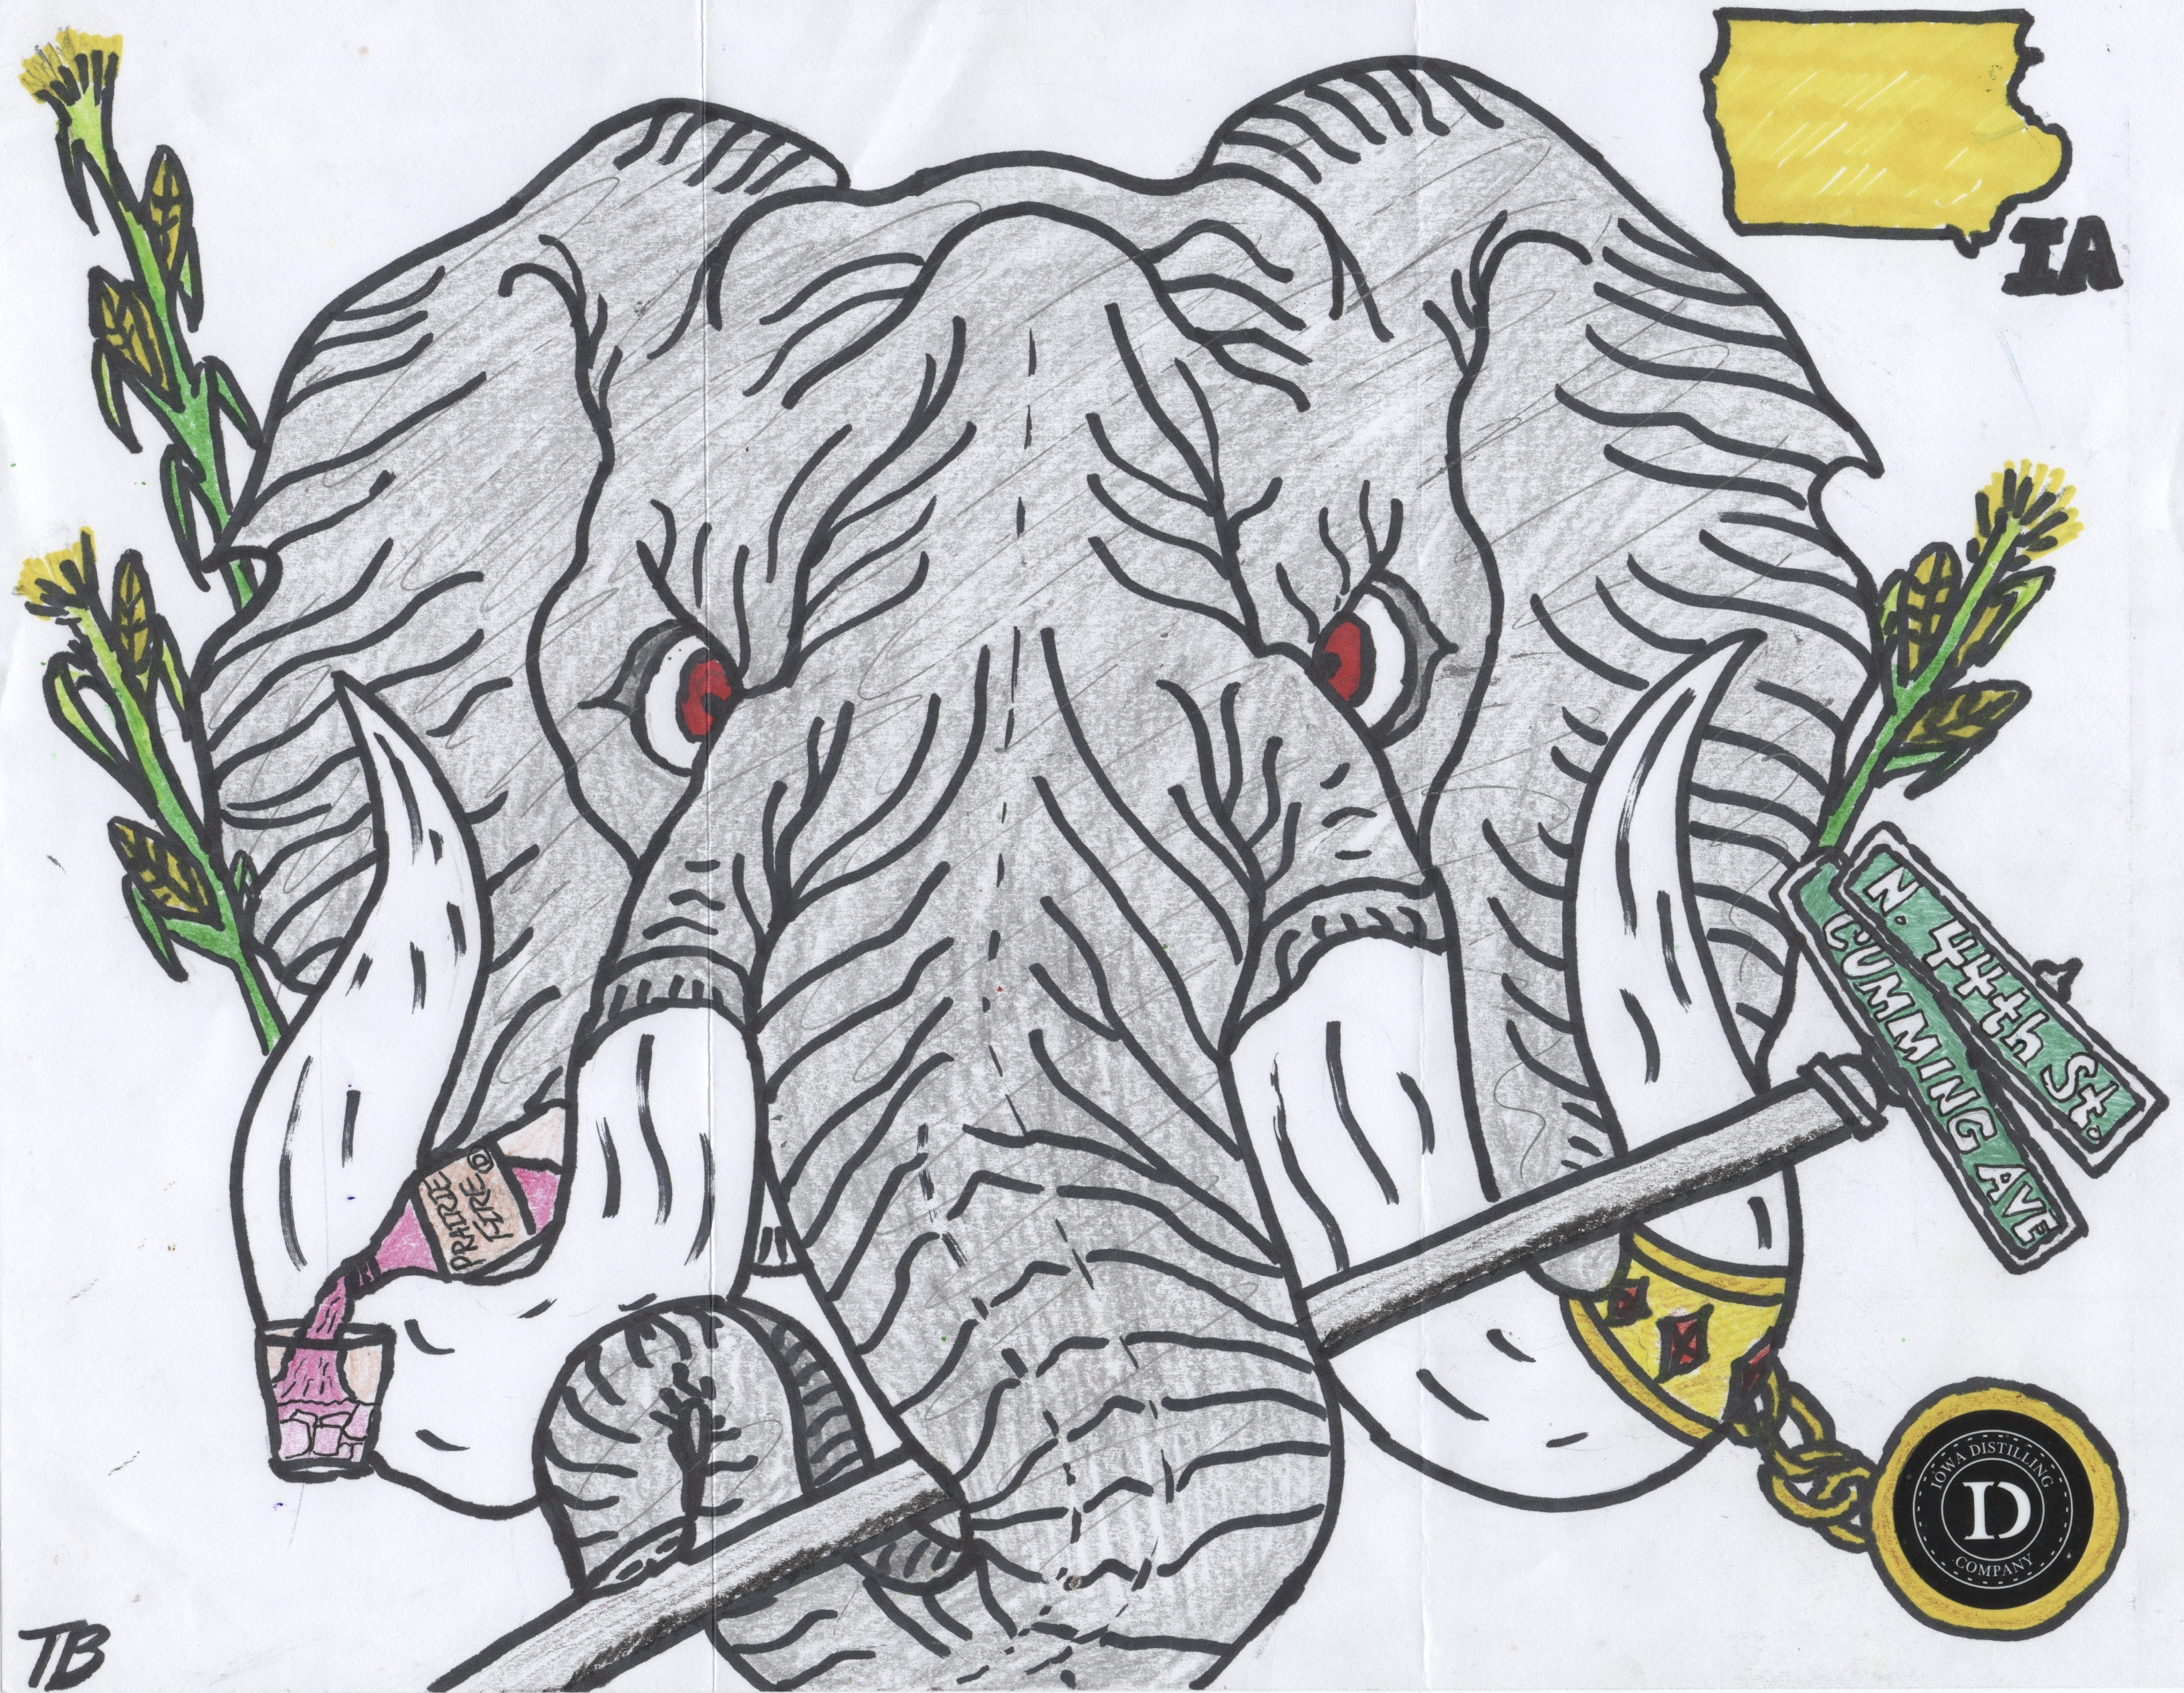 Iowa Distilling Company delivers with a fine elephant